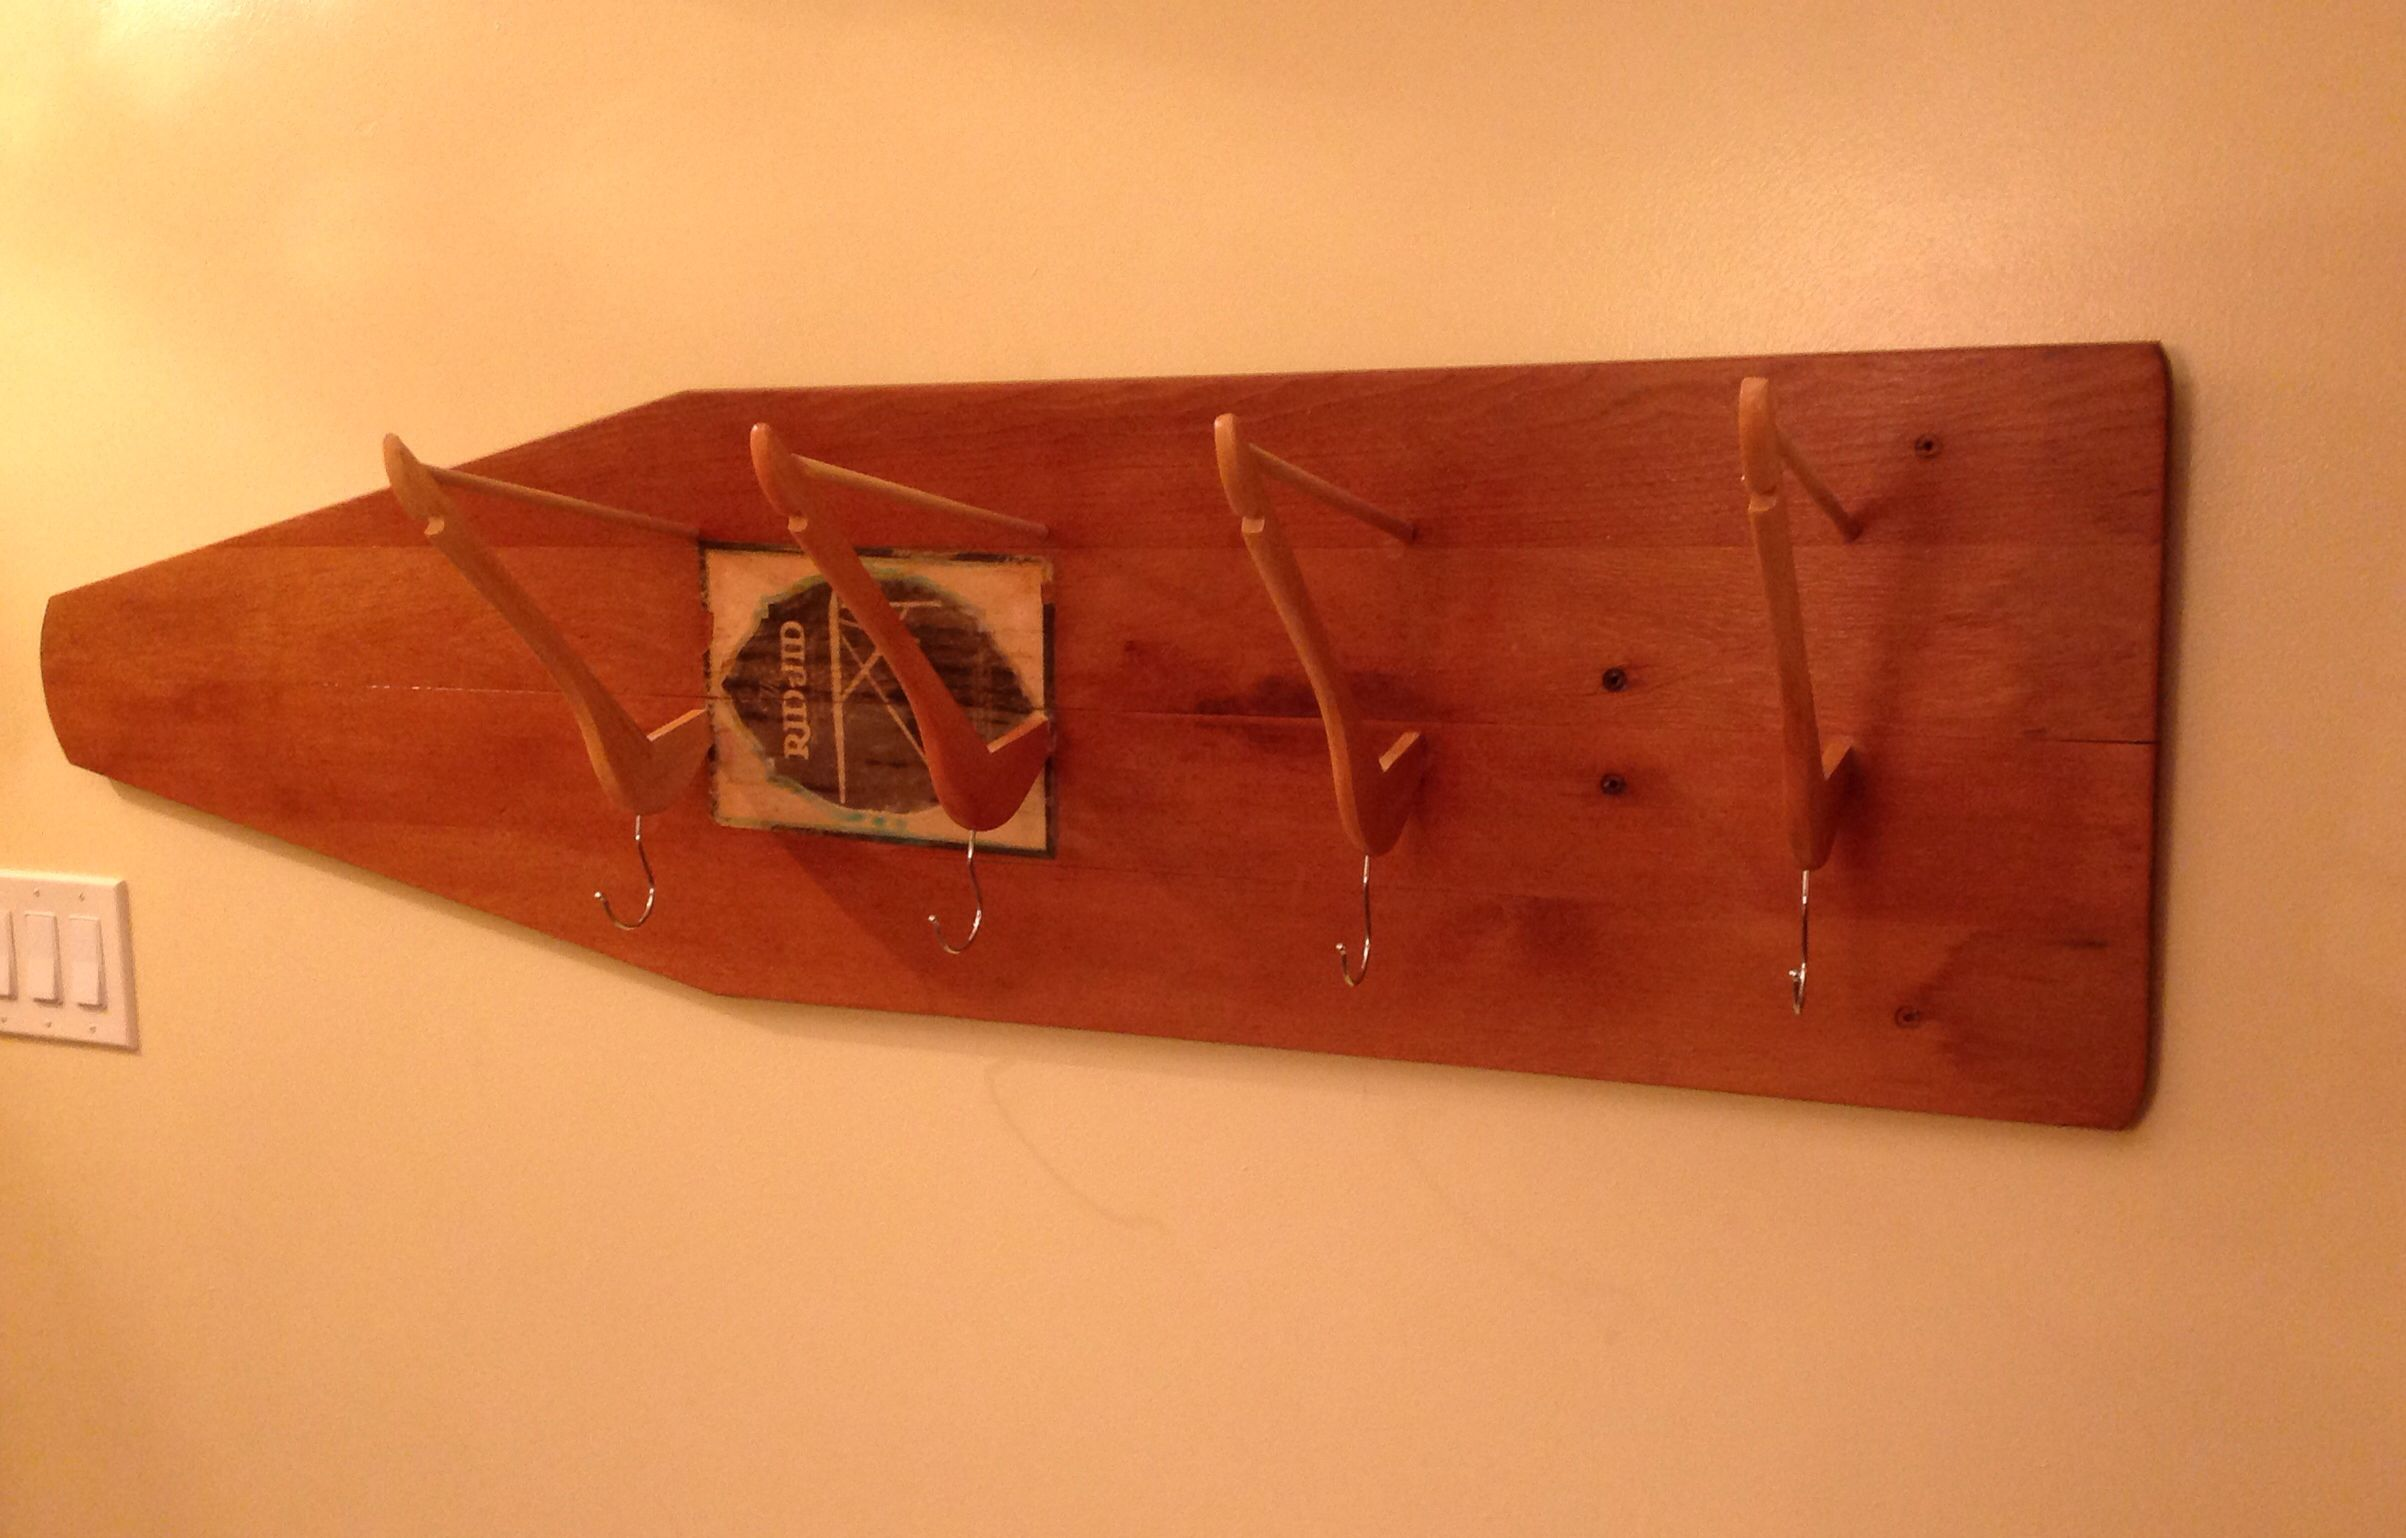 Coat rack from an old ironing board more at vendor on facebook